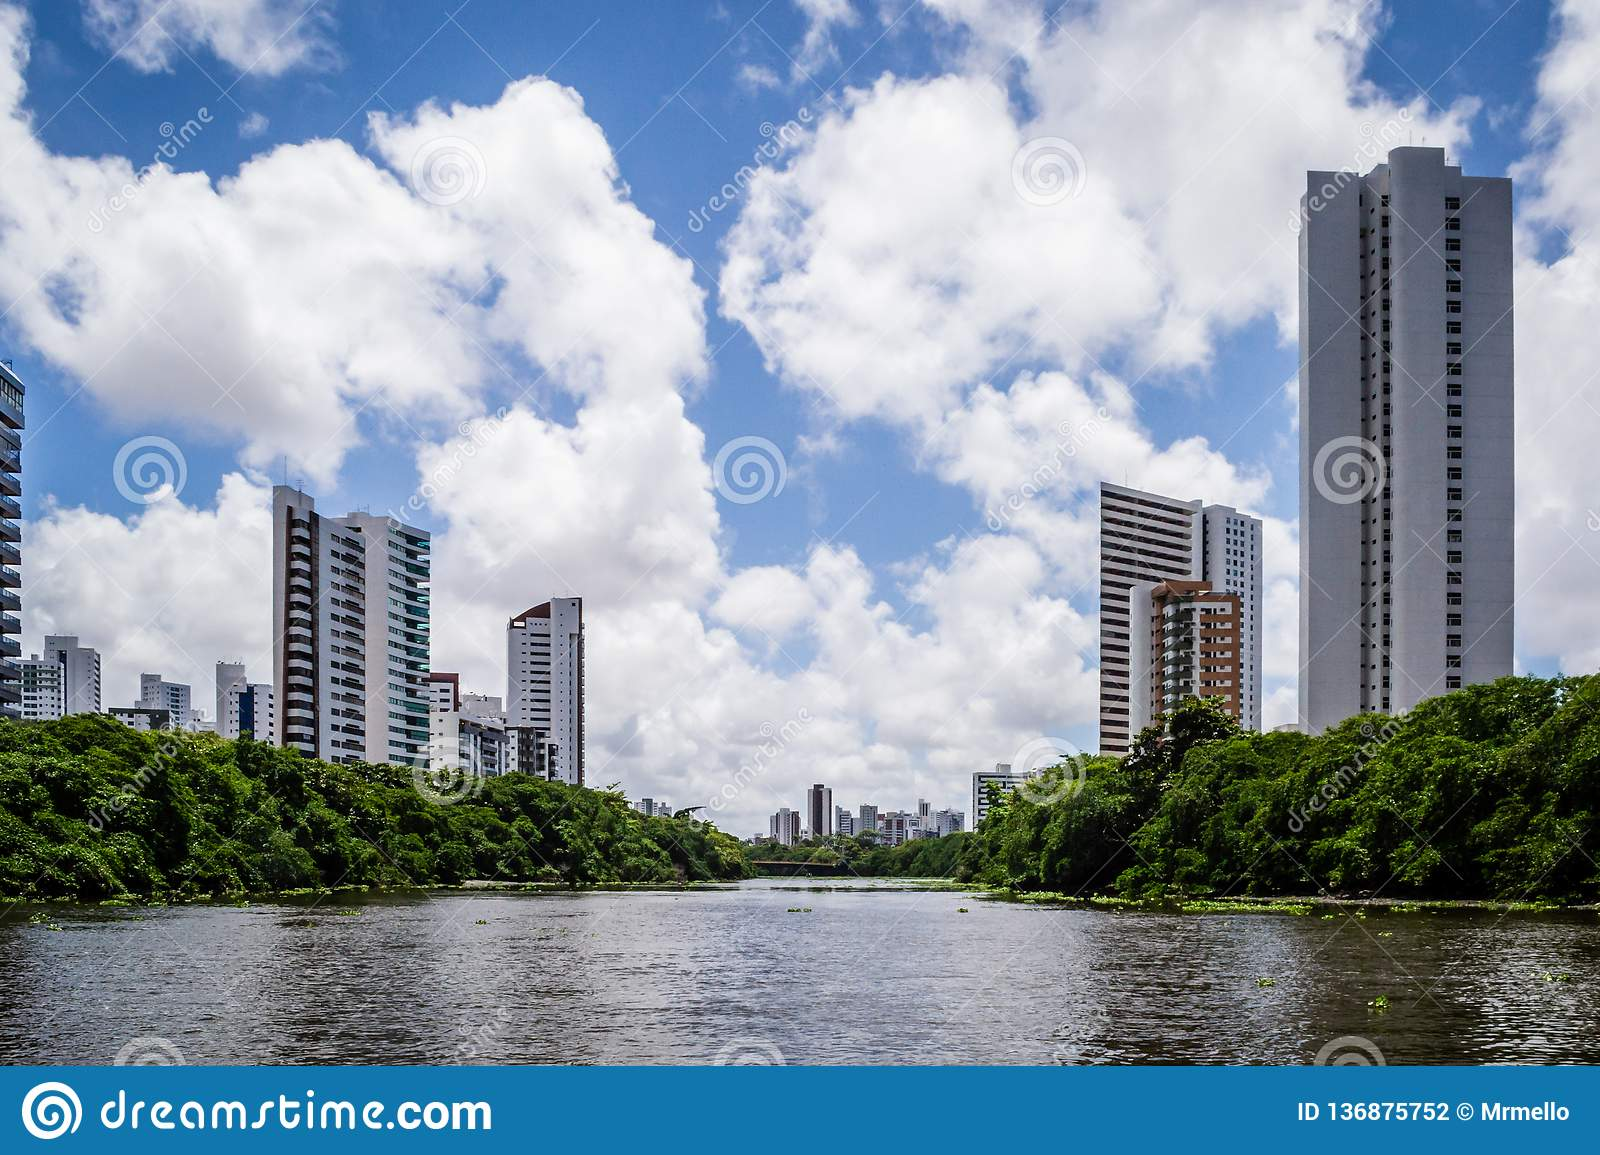 Cities of Brazil - Recife, Pernambuco state`s capital